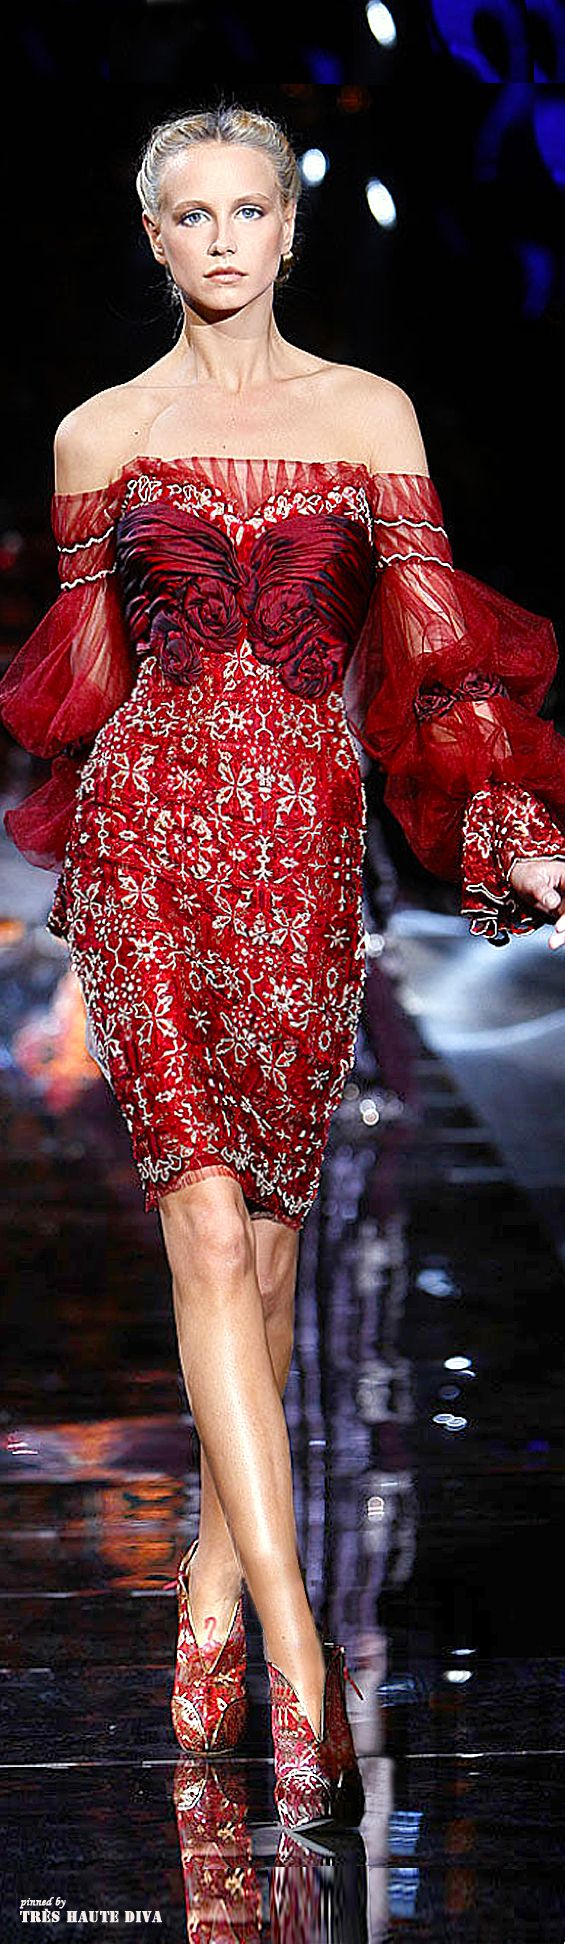 [Mutant breasts?  Daddy and I were just talking today about those mutant ducks by the St. Joe River, and then I saw this.]  Zuhair Murad Fall/Winter Couture